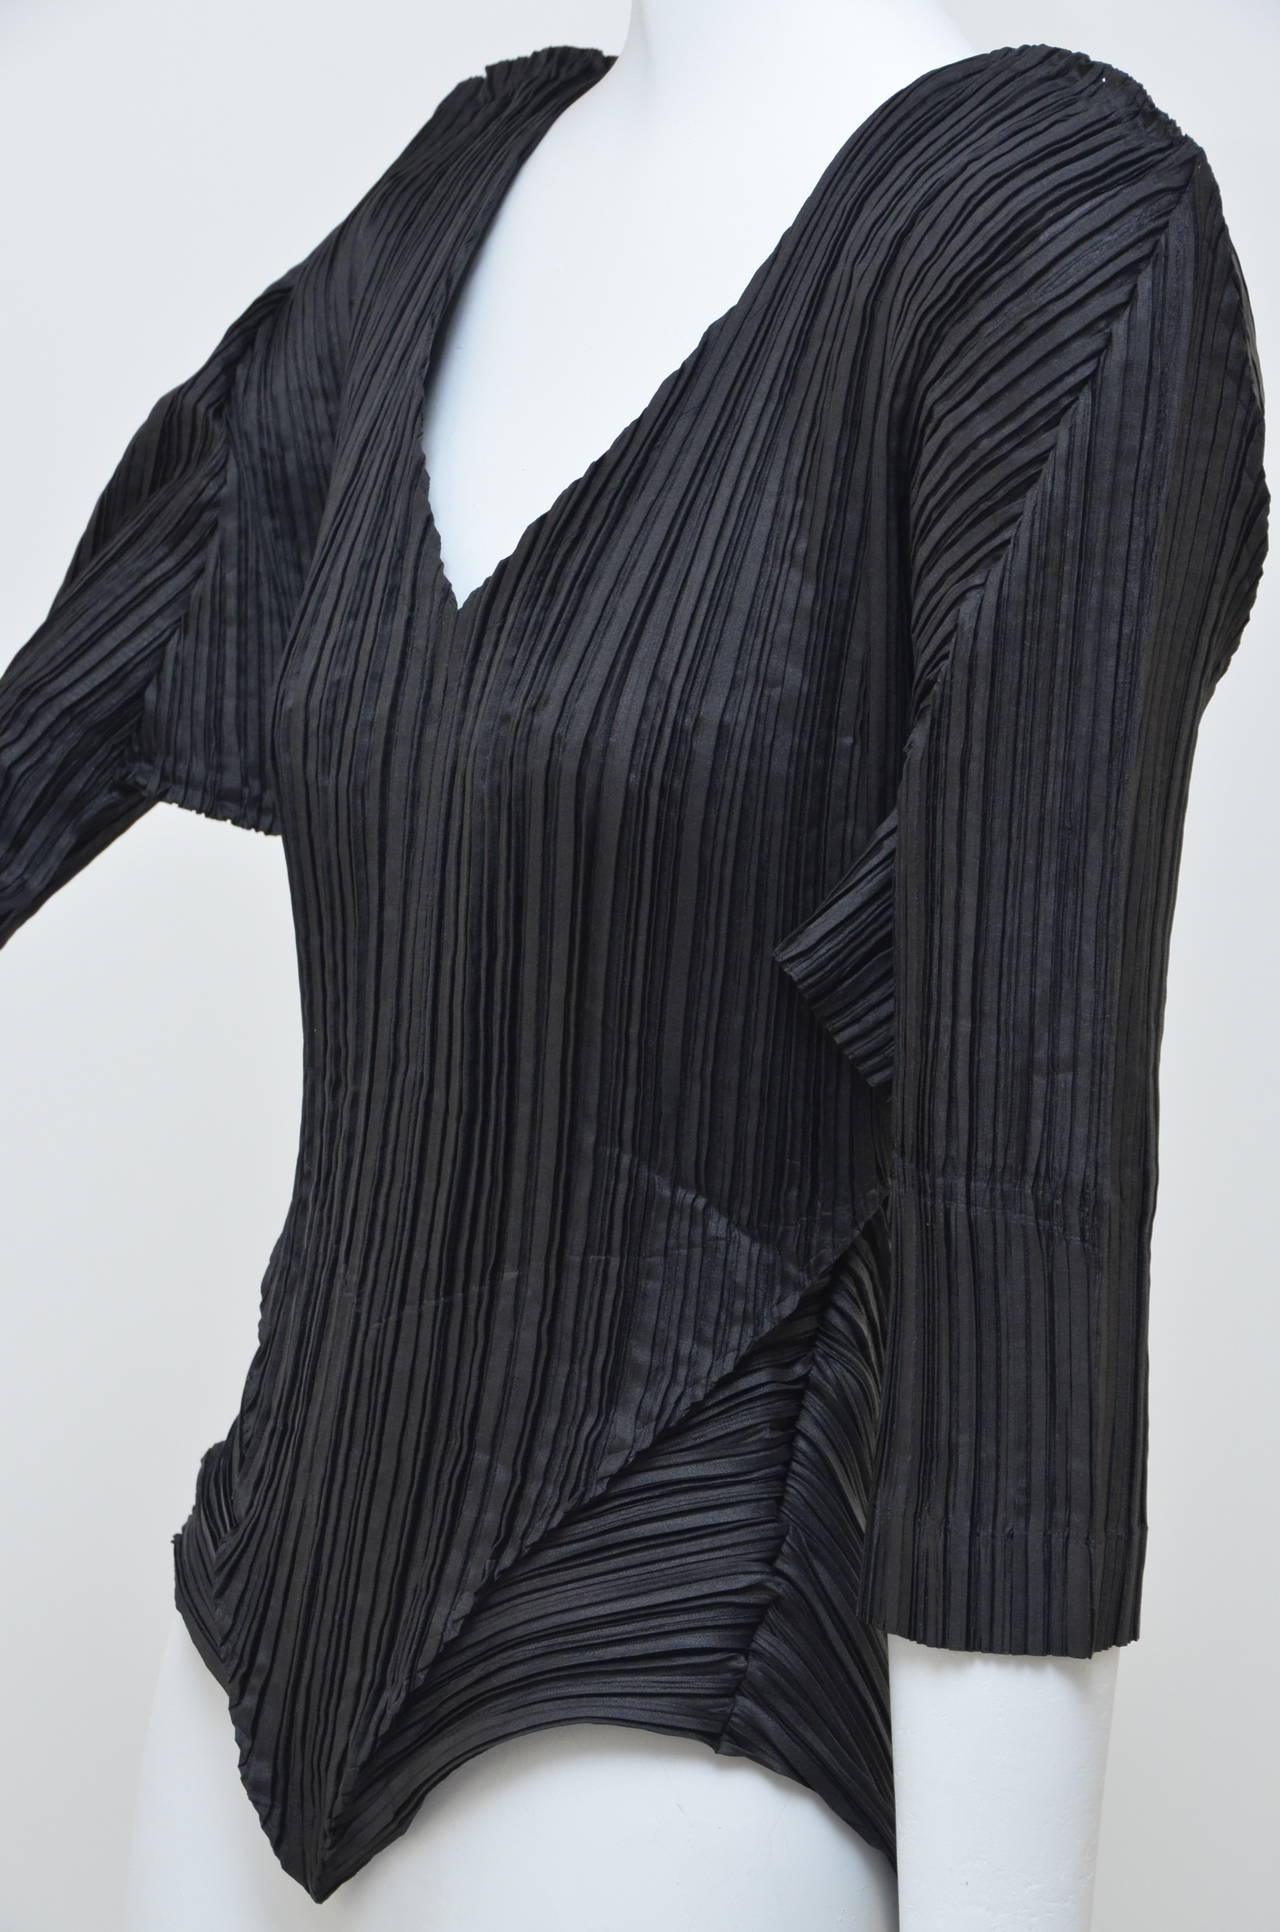 Women's Issey Miyake  Origami Pleat  Top With Tails 1989 For Sale